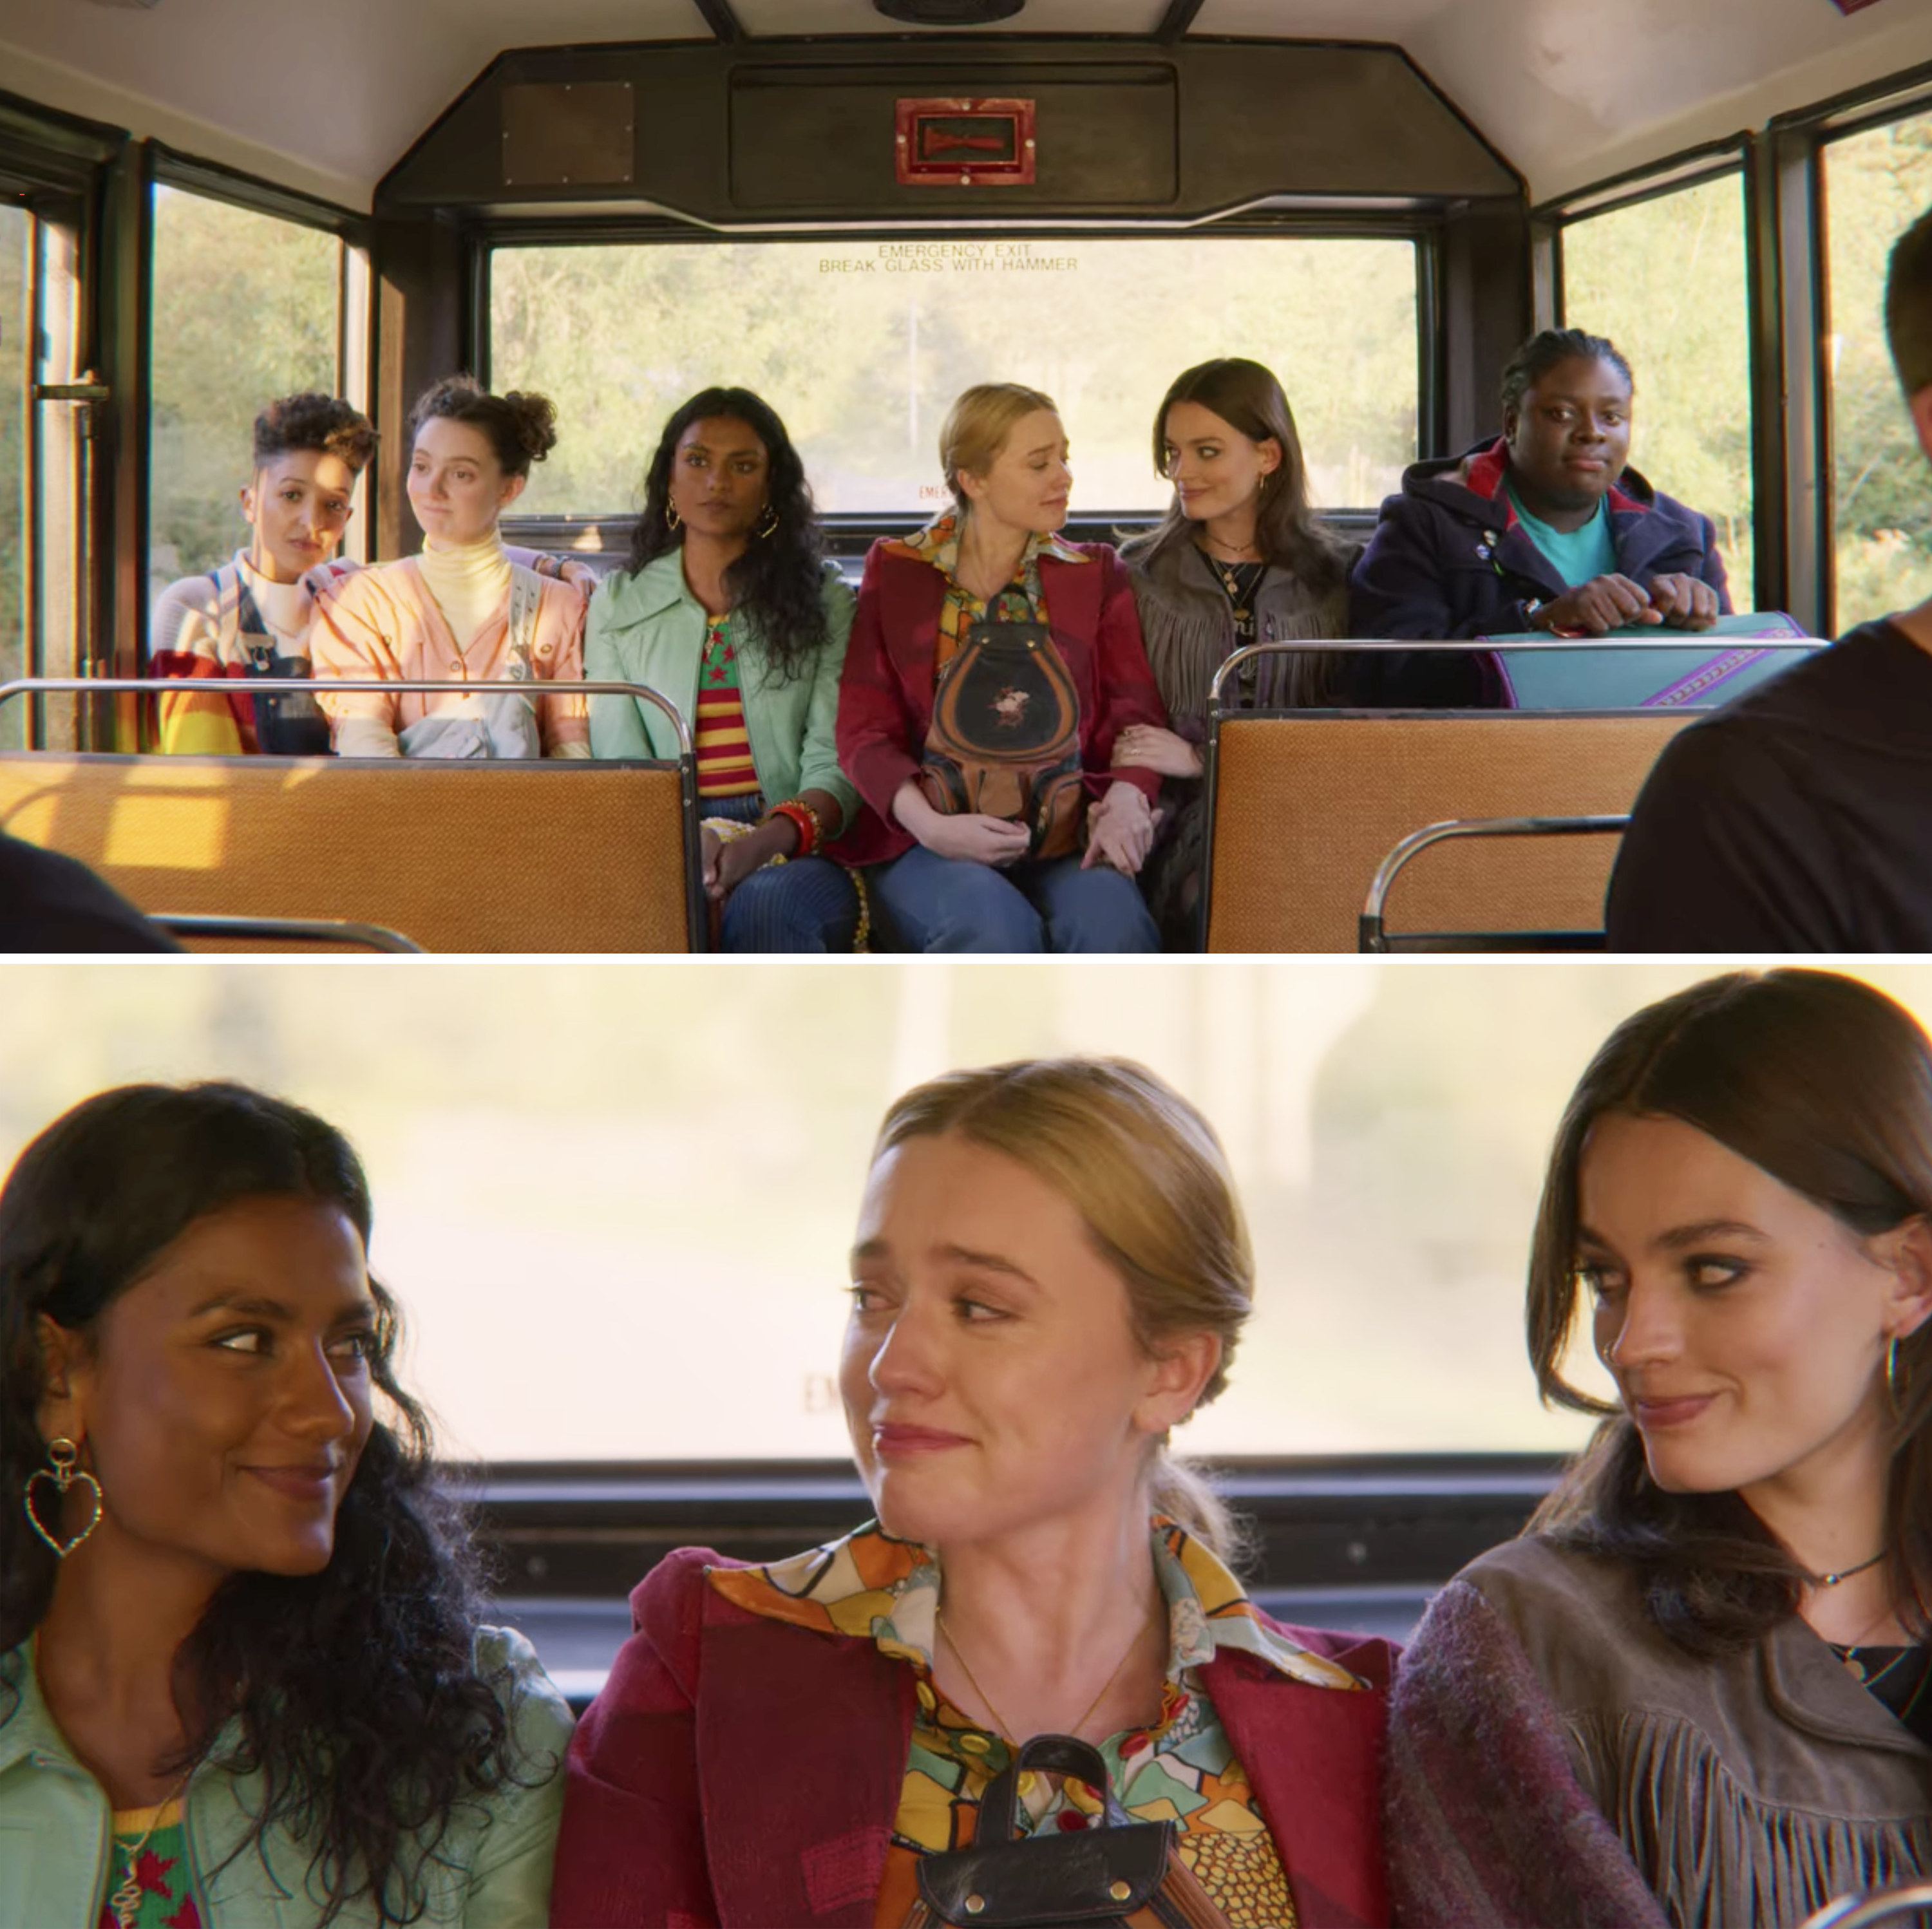 Maeve, Aimee, and the rest of her friends sitting in the back of a bus